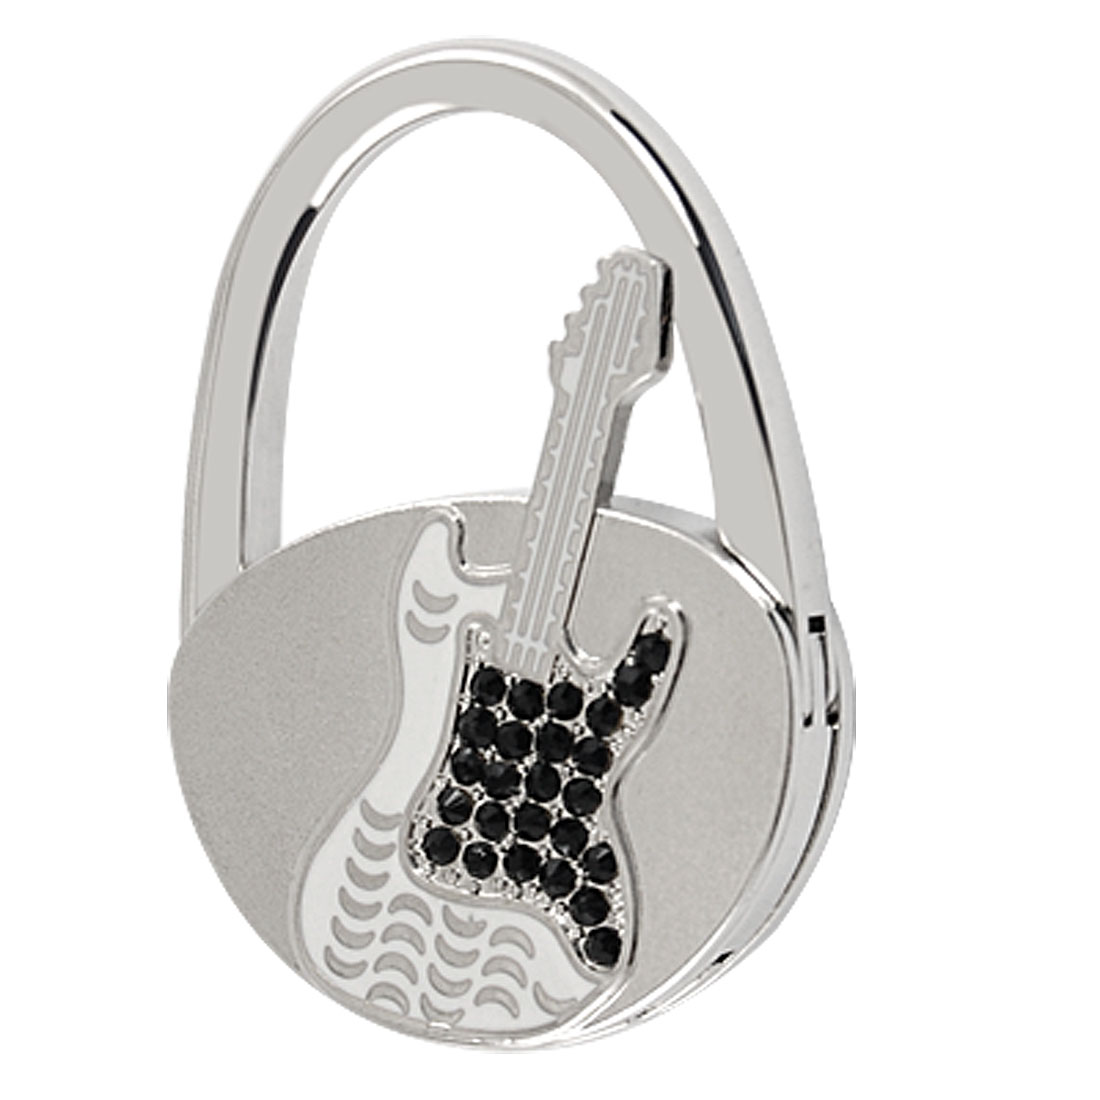 Rhinestone Inlaid White Guitar Motif Handbag Foldable Hook